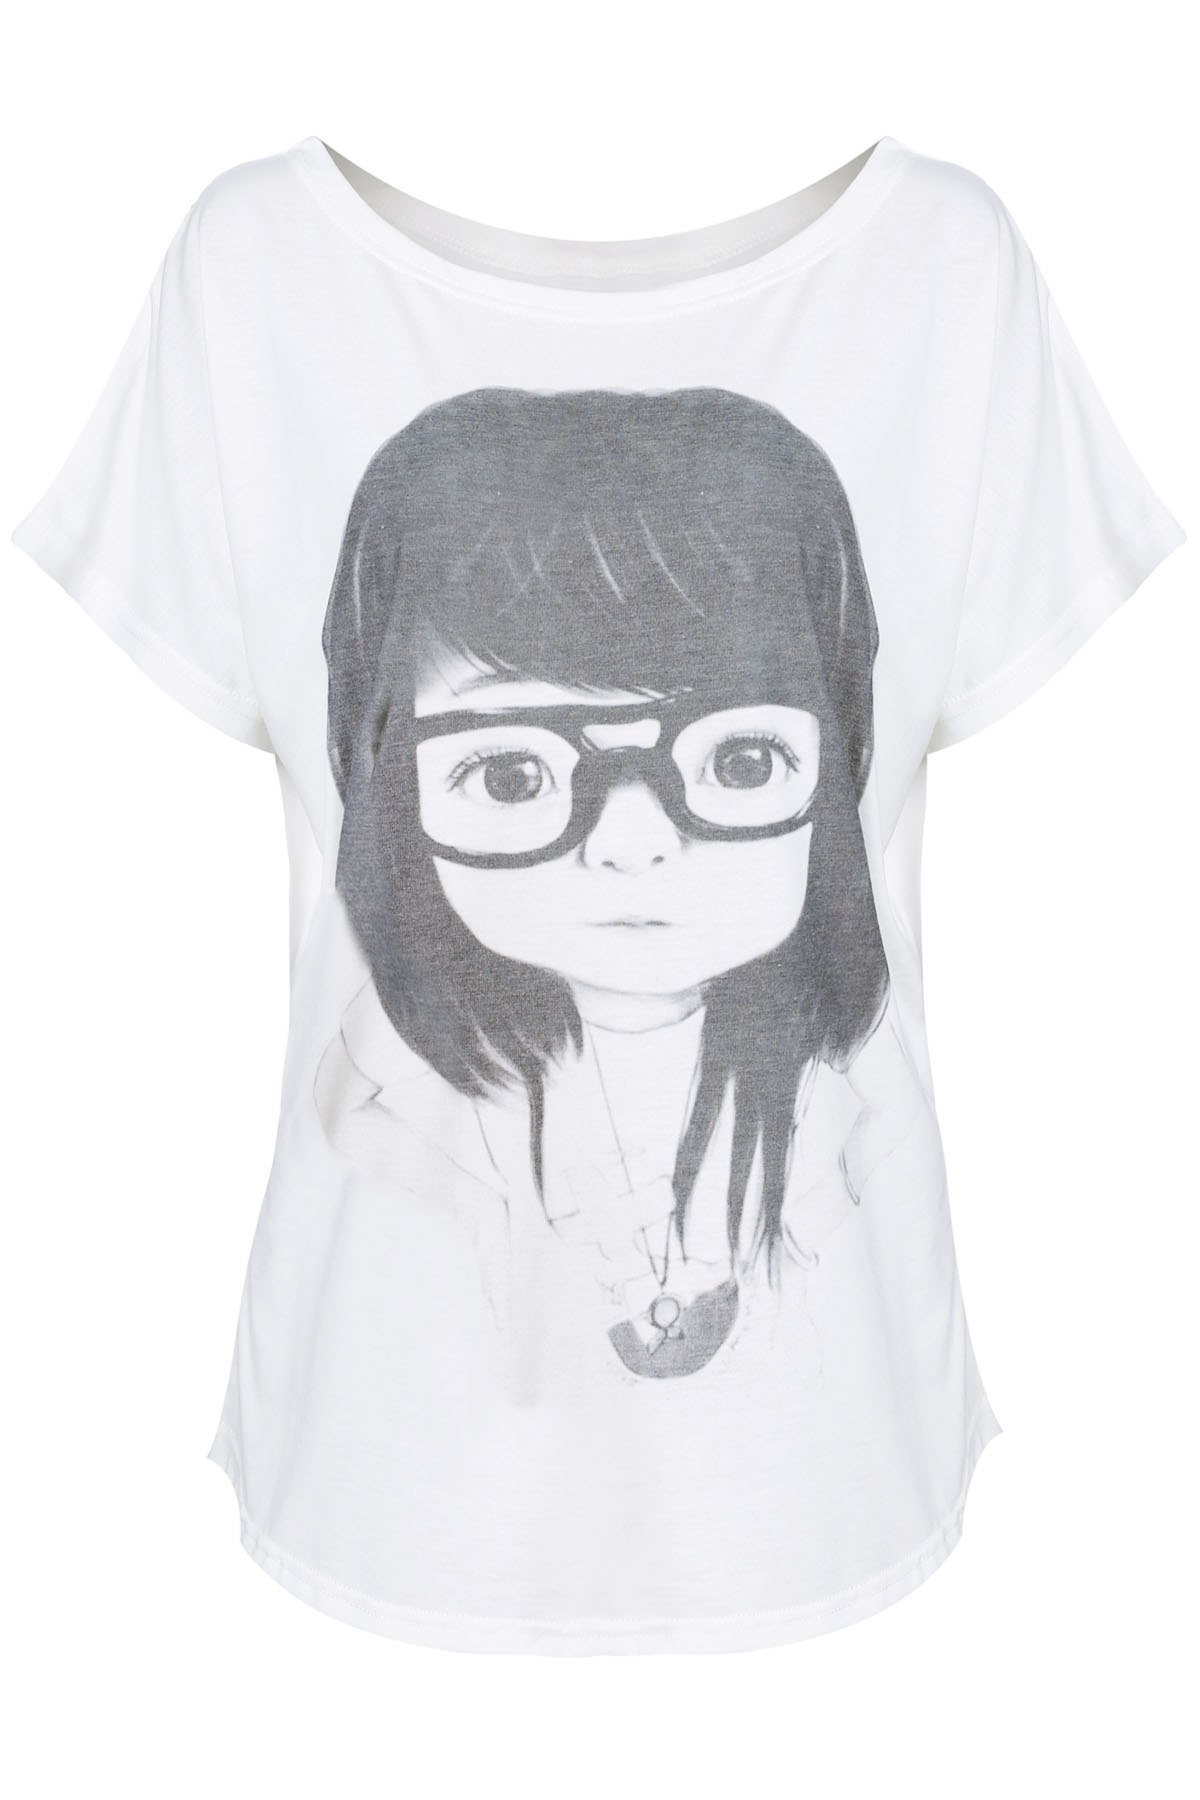 Women's Cute Girl In Glasses Pattern Loose Fit Short Sleeves T-shirt - WHITE ONE SIZE